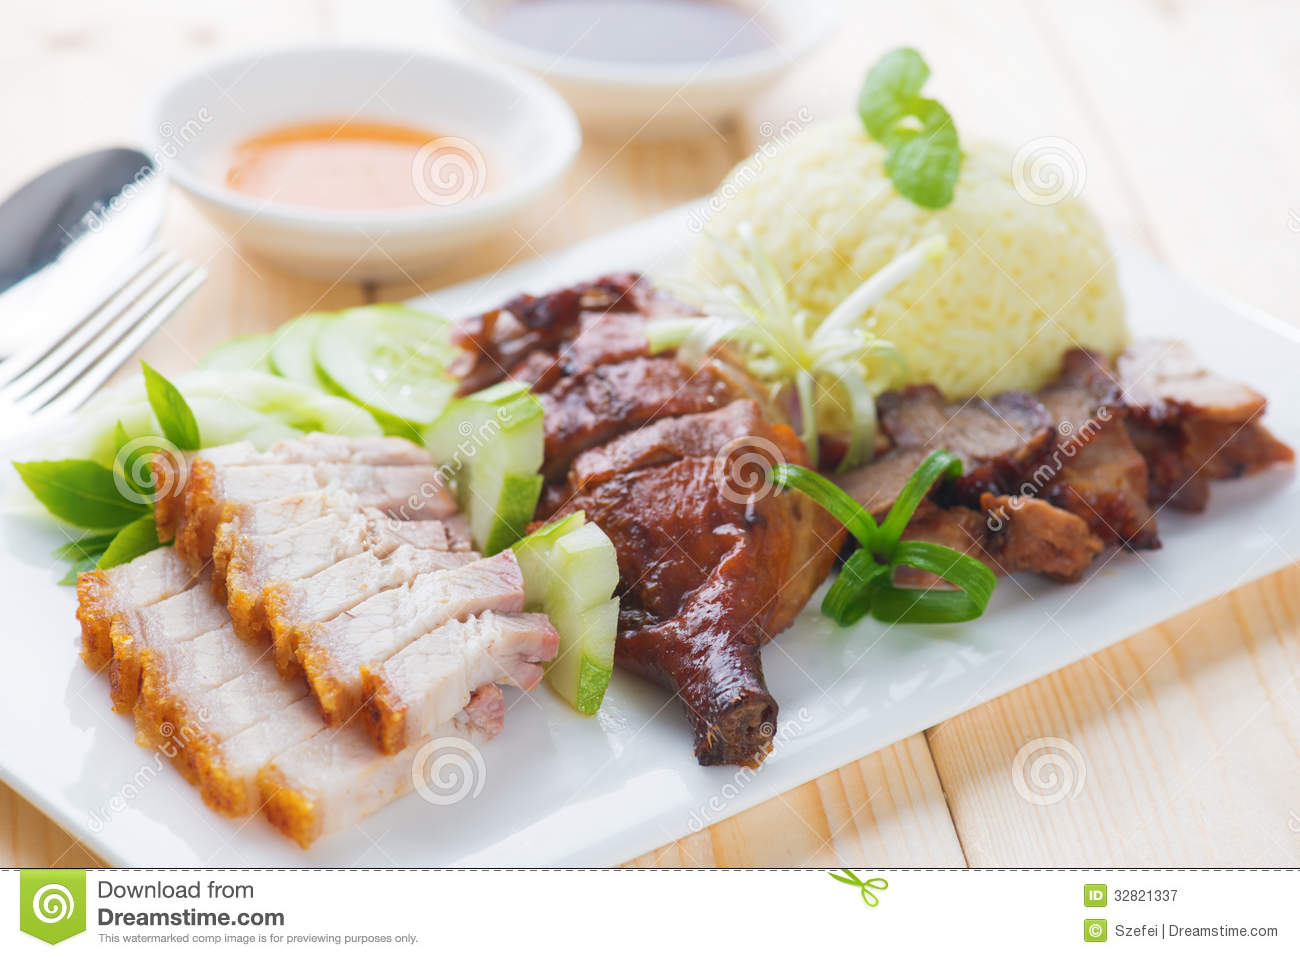 Roasted Duck Roasted Pork Crispy Siu Yuk And Charsiu  : roasted duck roasted pork crispy siu yuk charsiu chinese st style served steamed rice dining table malaysia cuisine 32821337 from www.dreamstime.com size 1300 x 958 jpeg 127kB